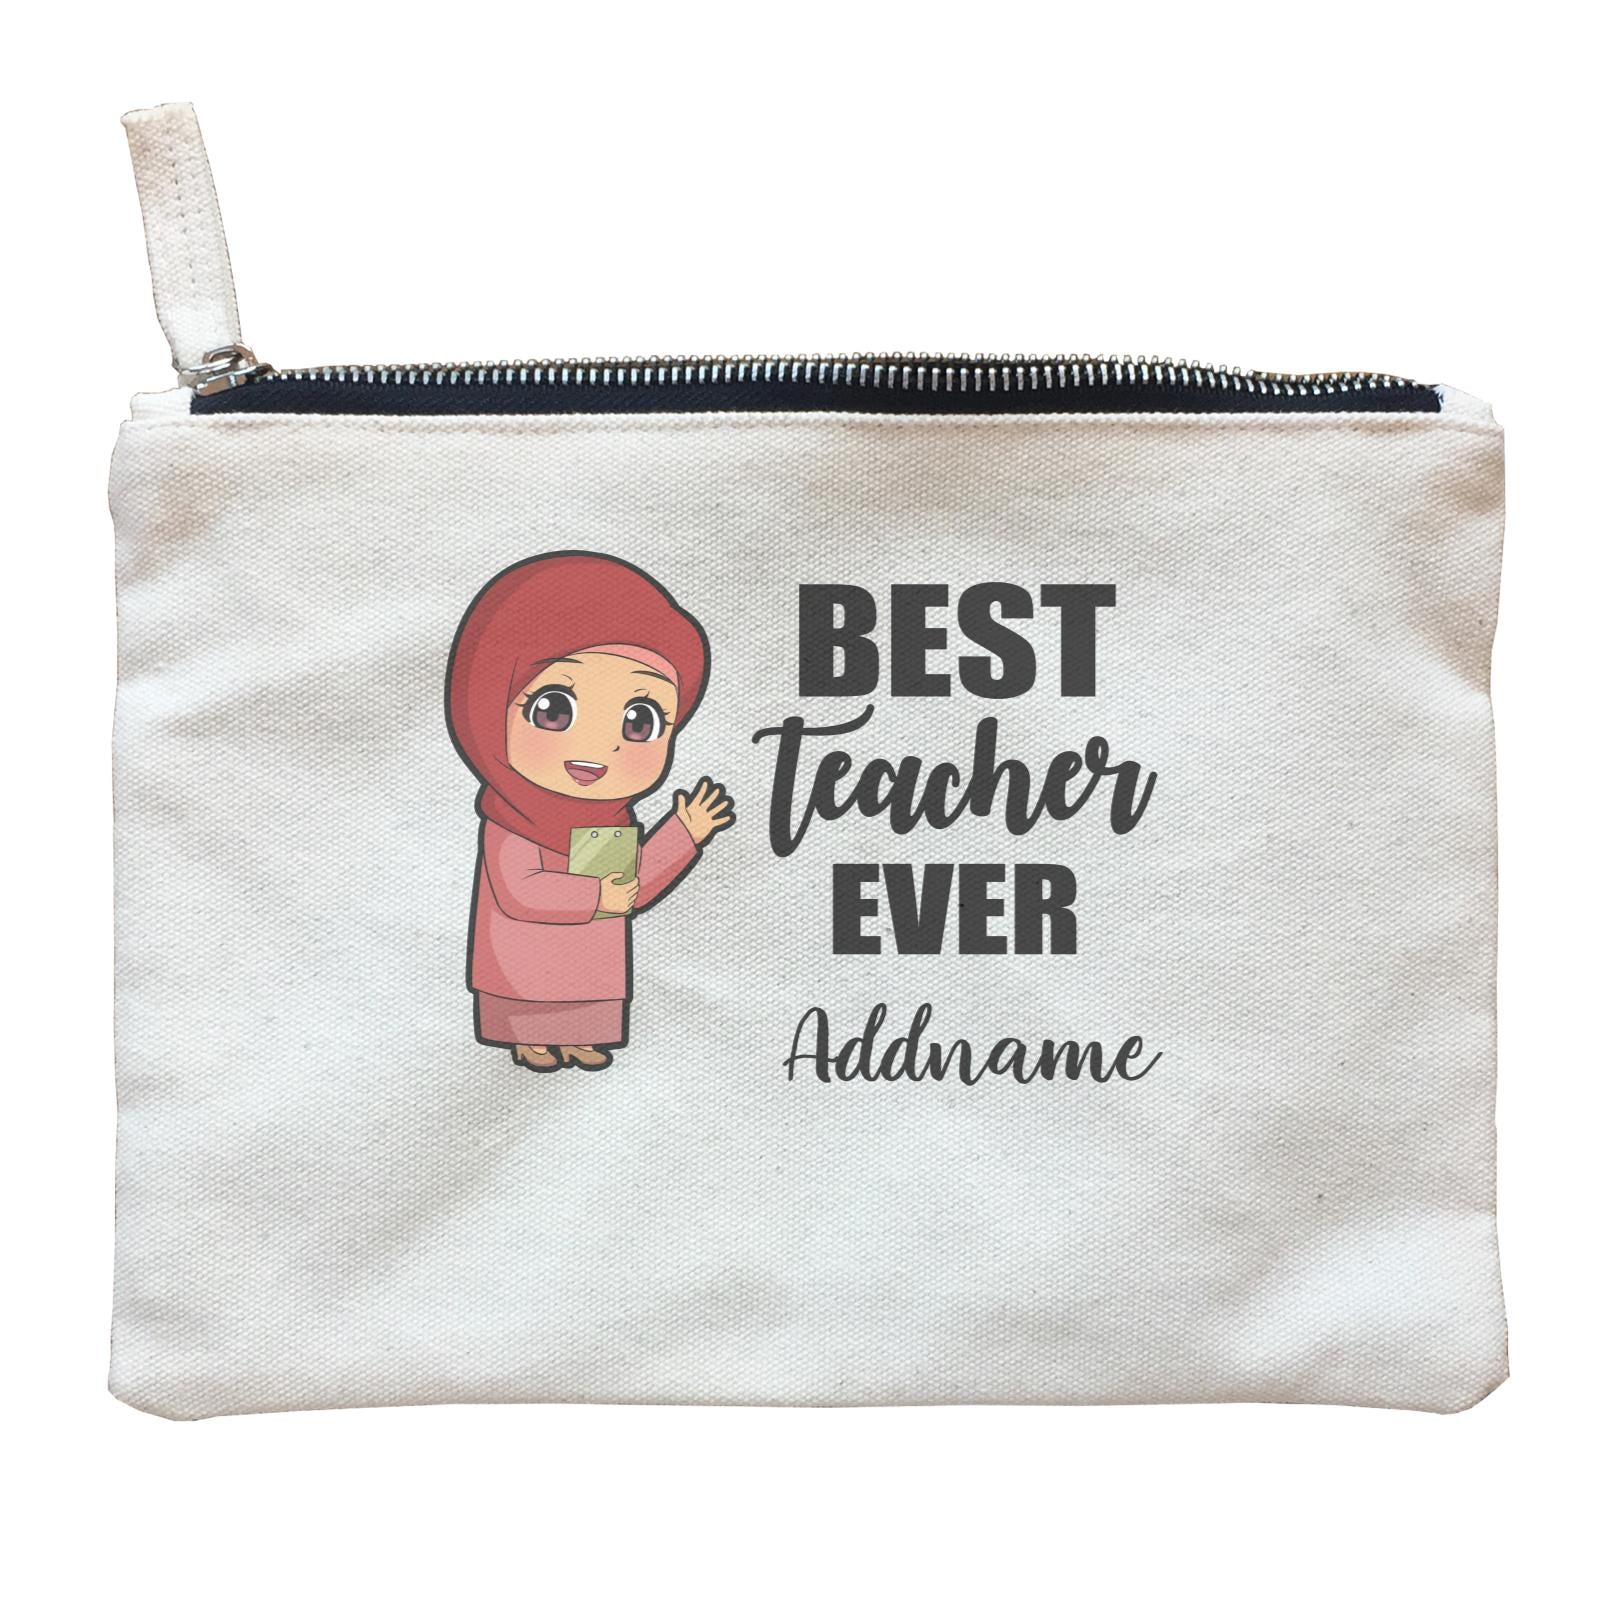 Chibi Teachers Malay Woman Best Teacher Ever Addname Zipper Pouch